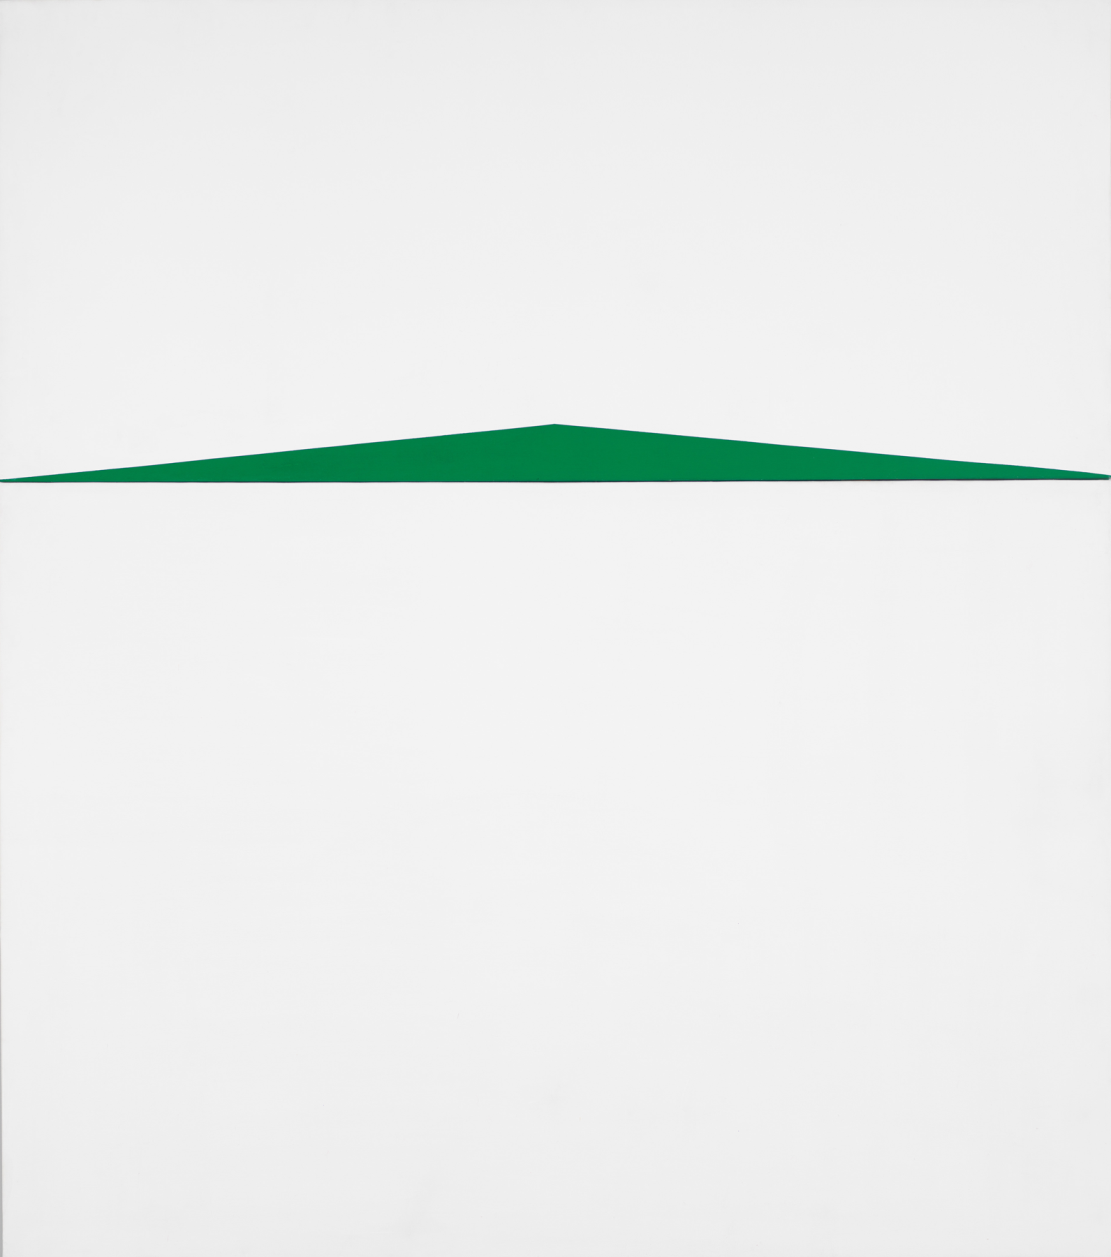 White and green artwork by Carmen Herrera.